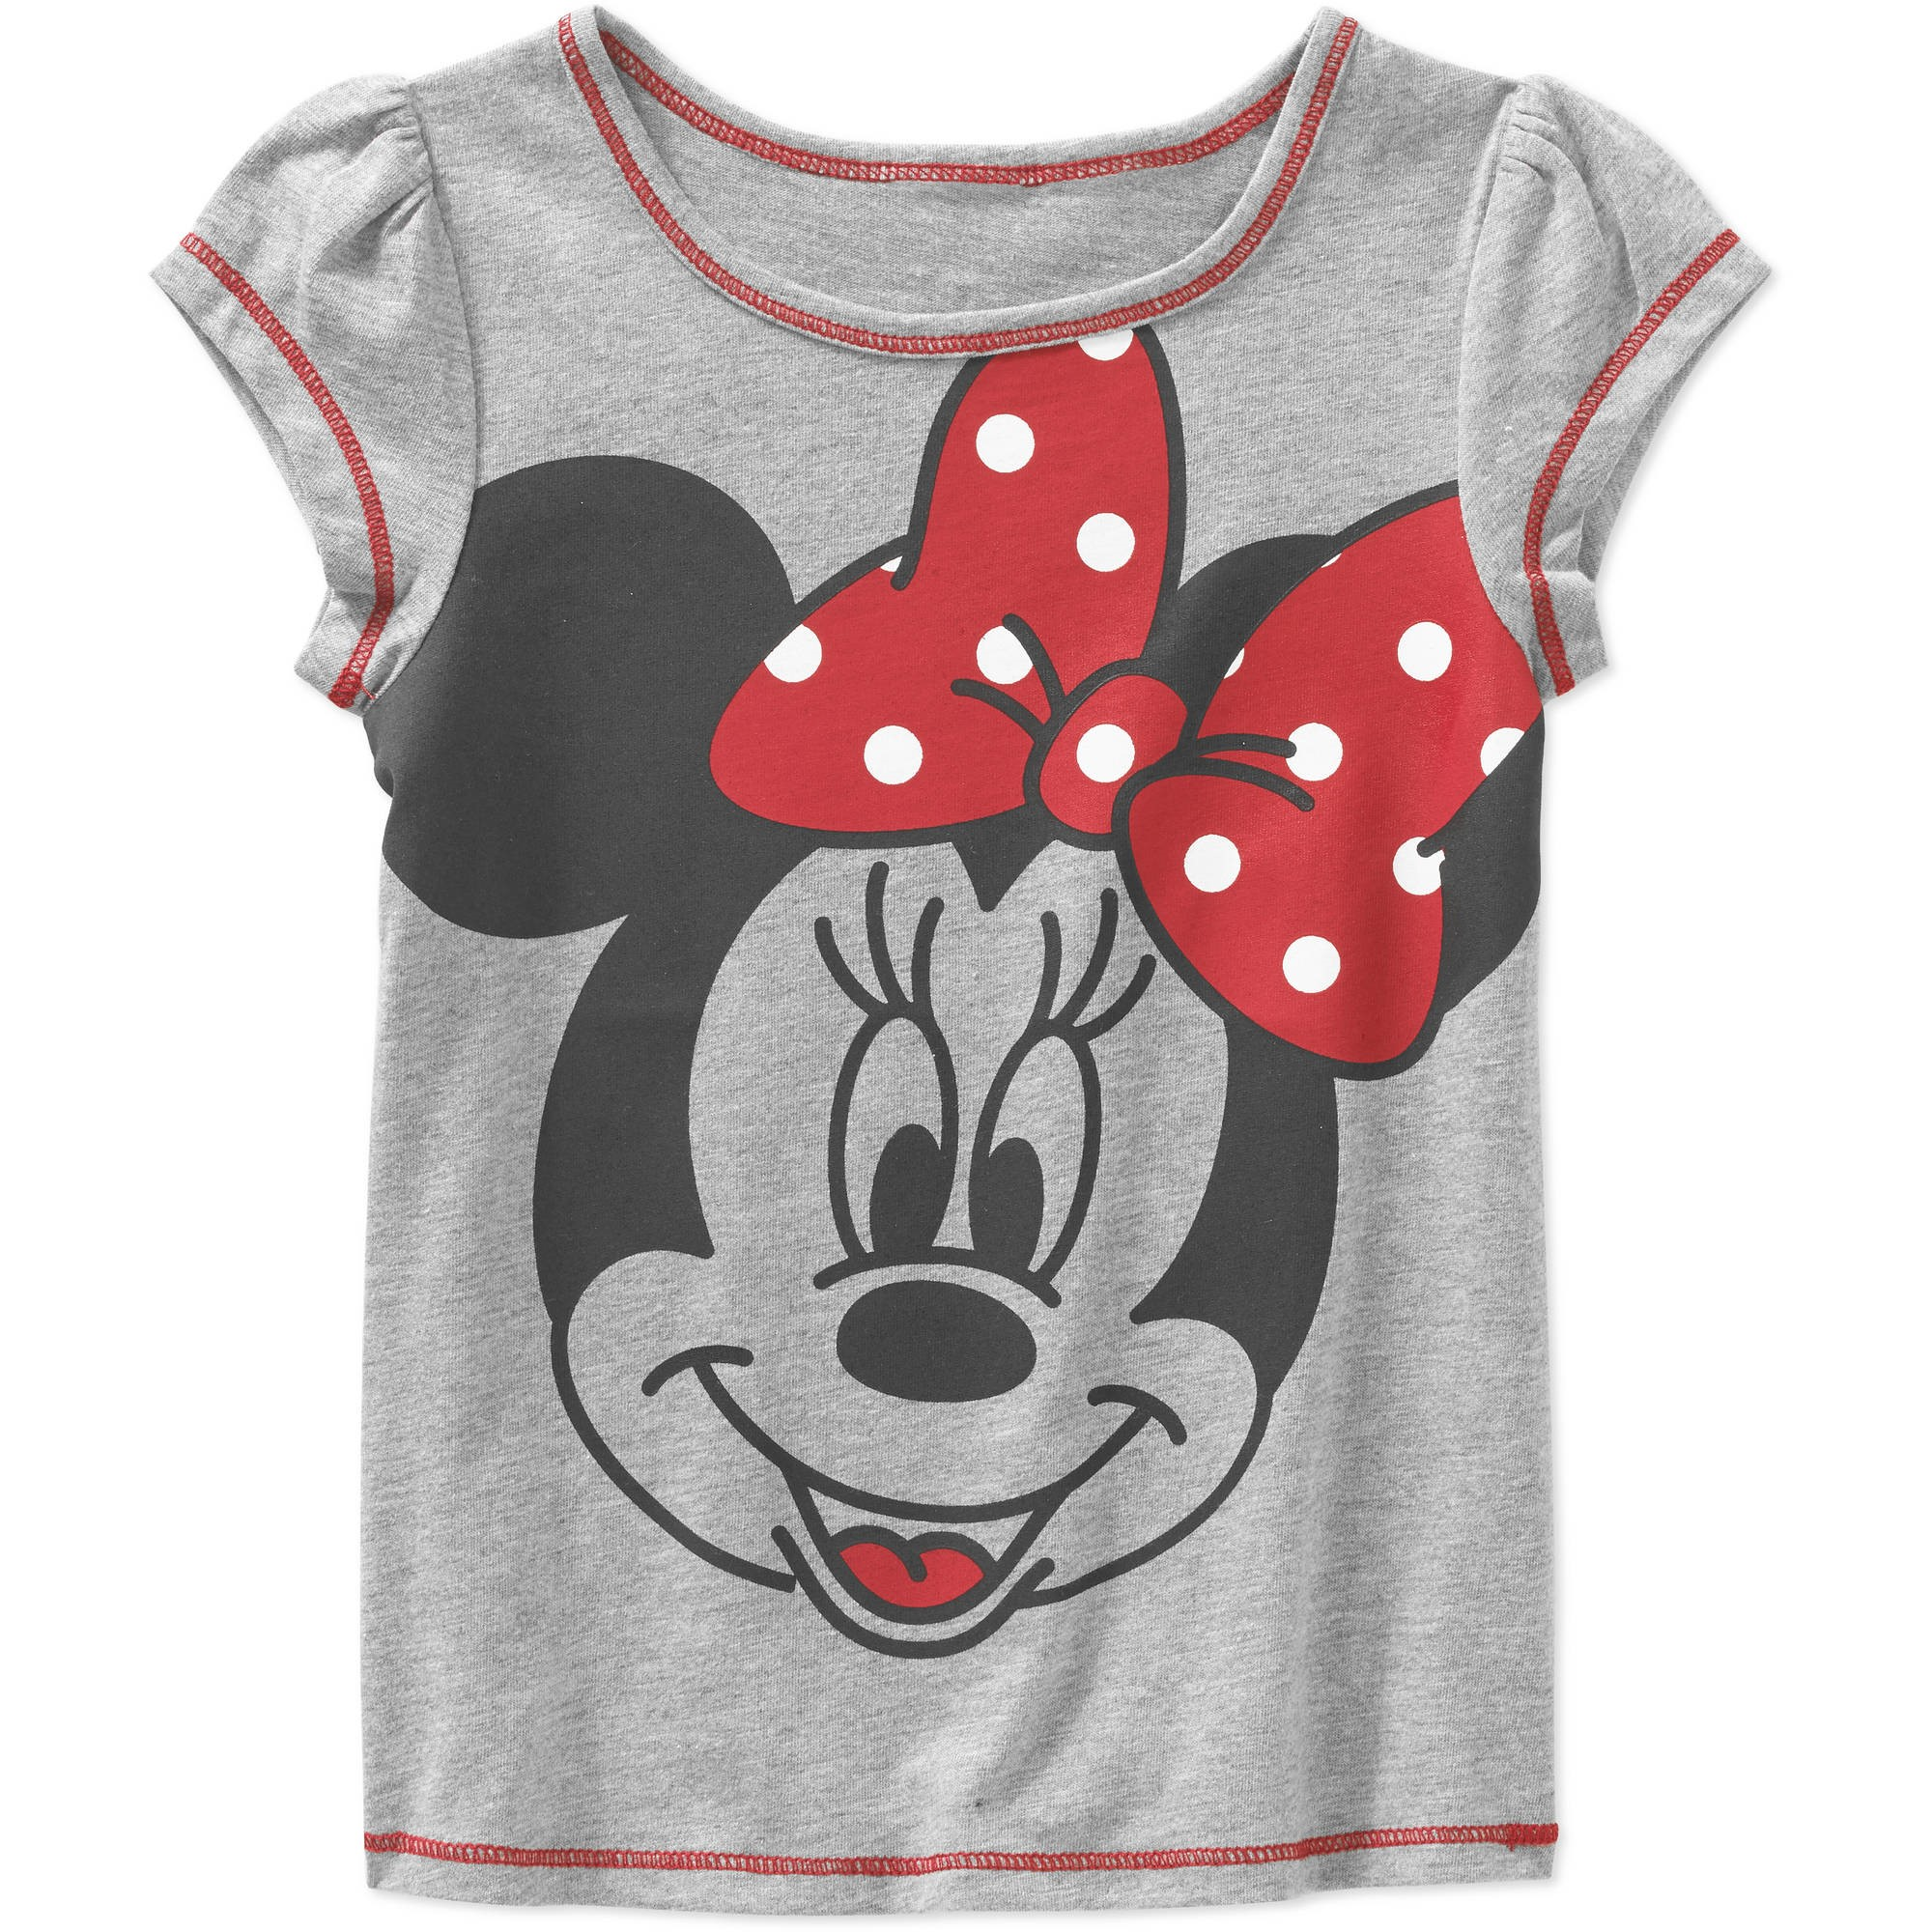 Toddler Girls' Short Sleeve Tee